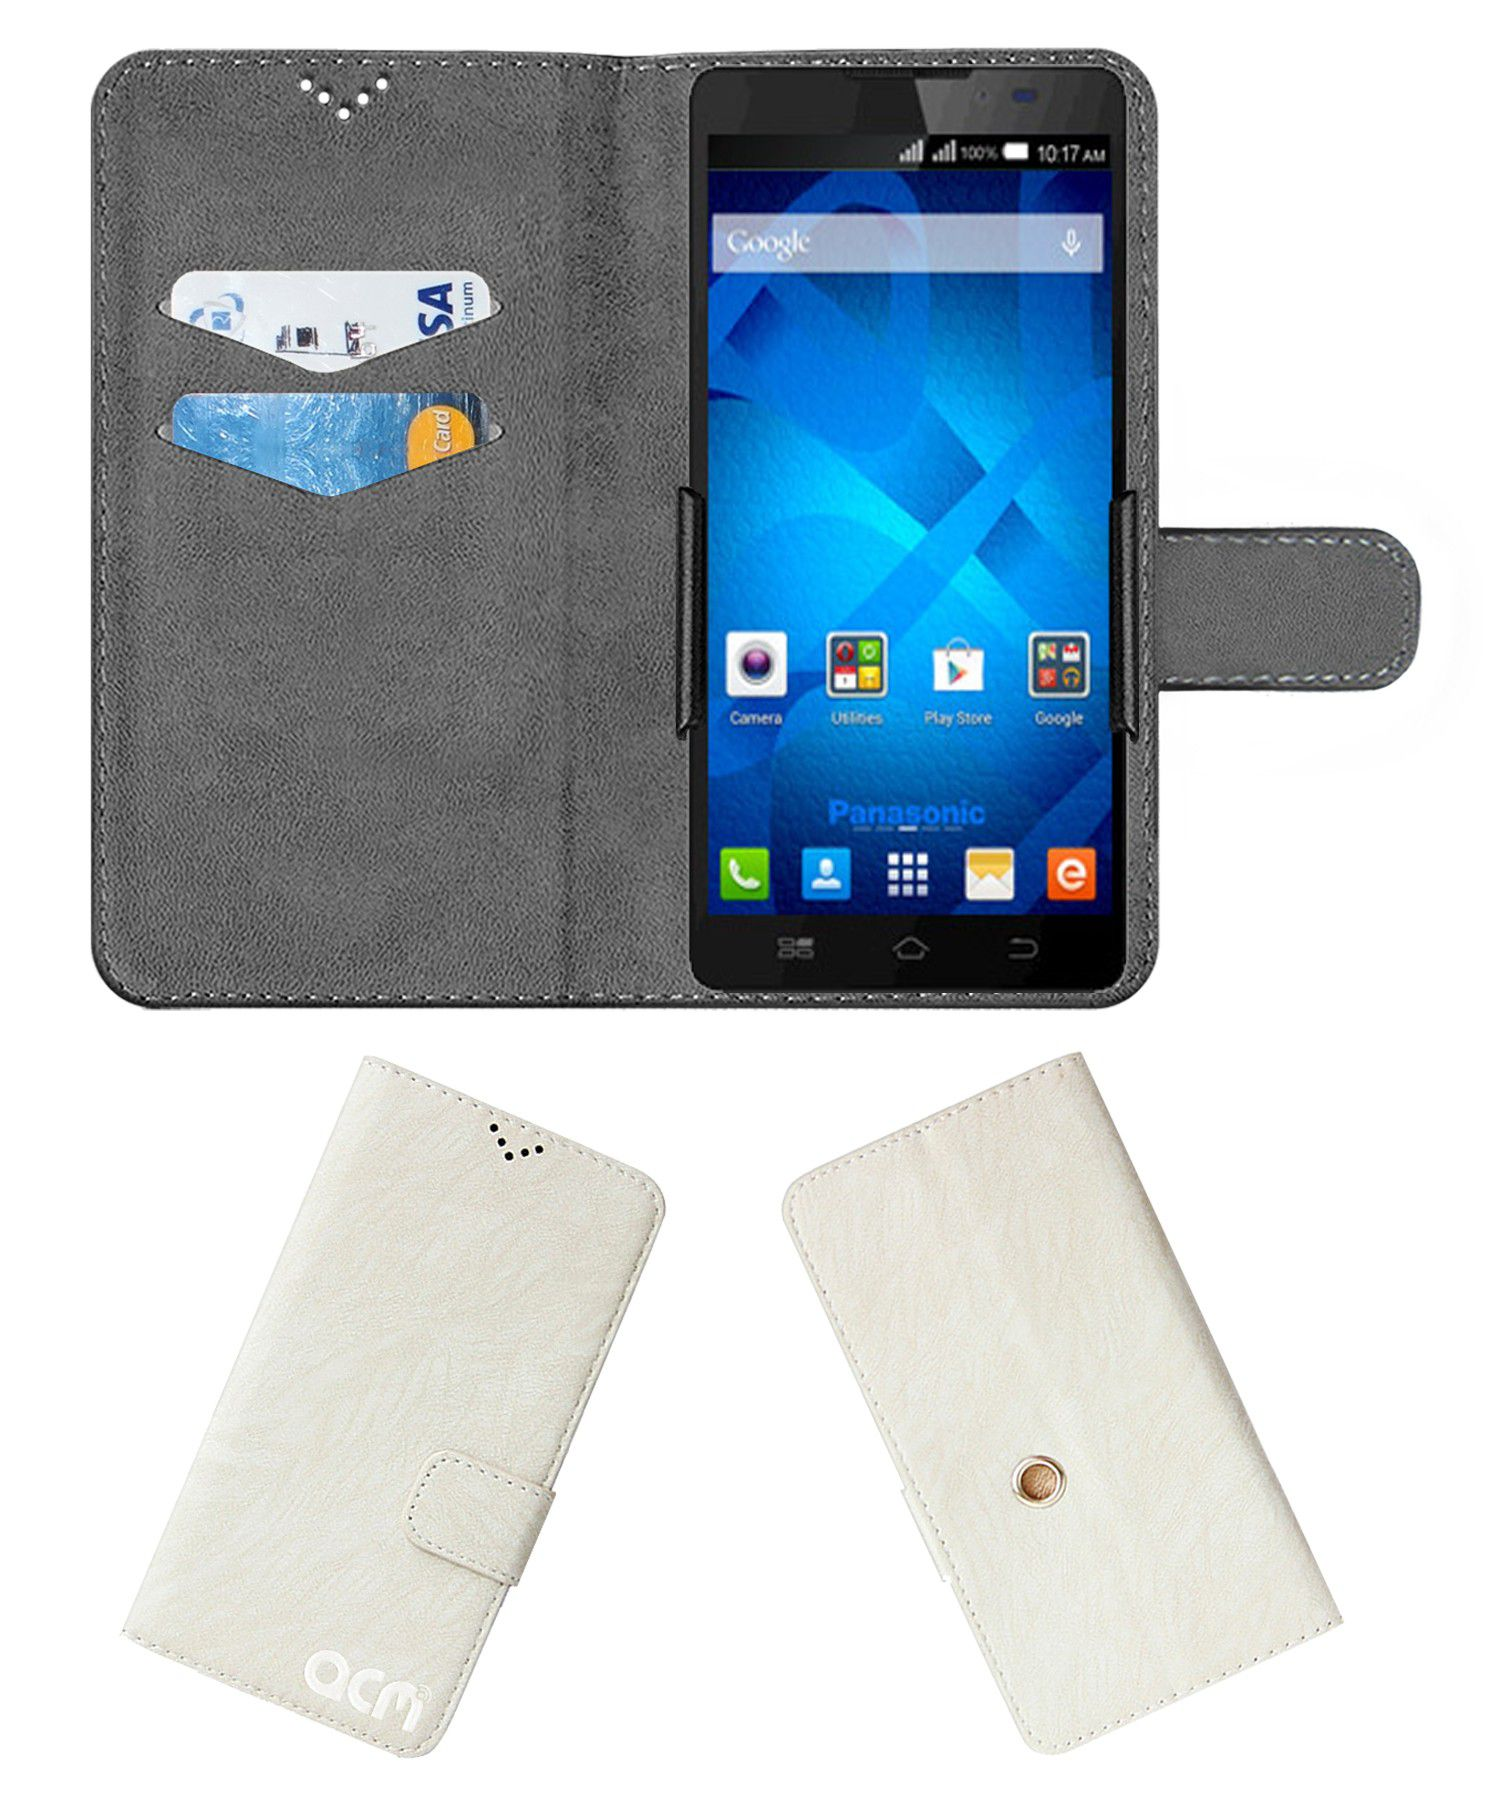 Panasonic P81 Flip Cover by ACM - White Clip holder to hold your mobile securely